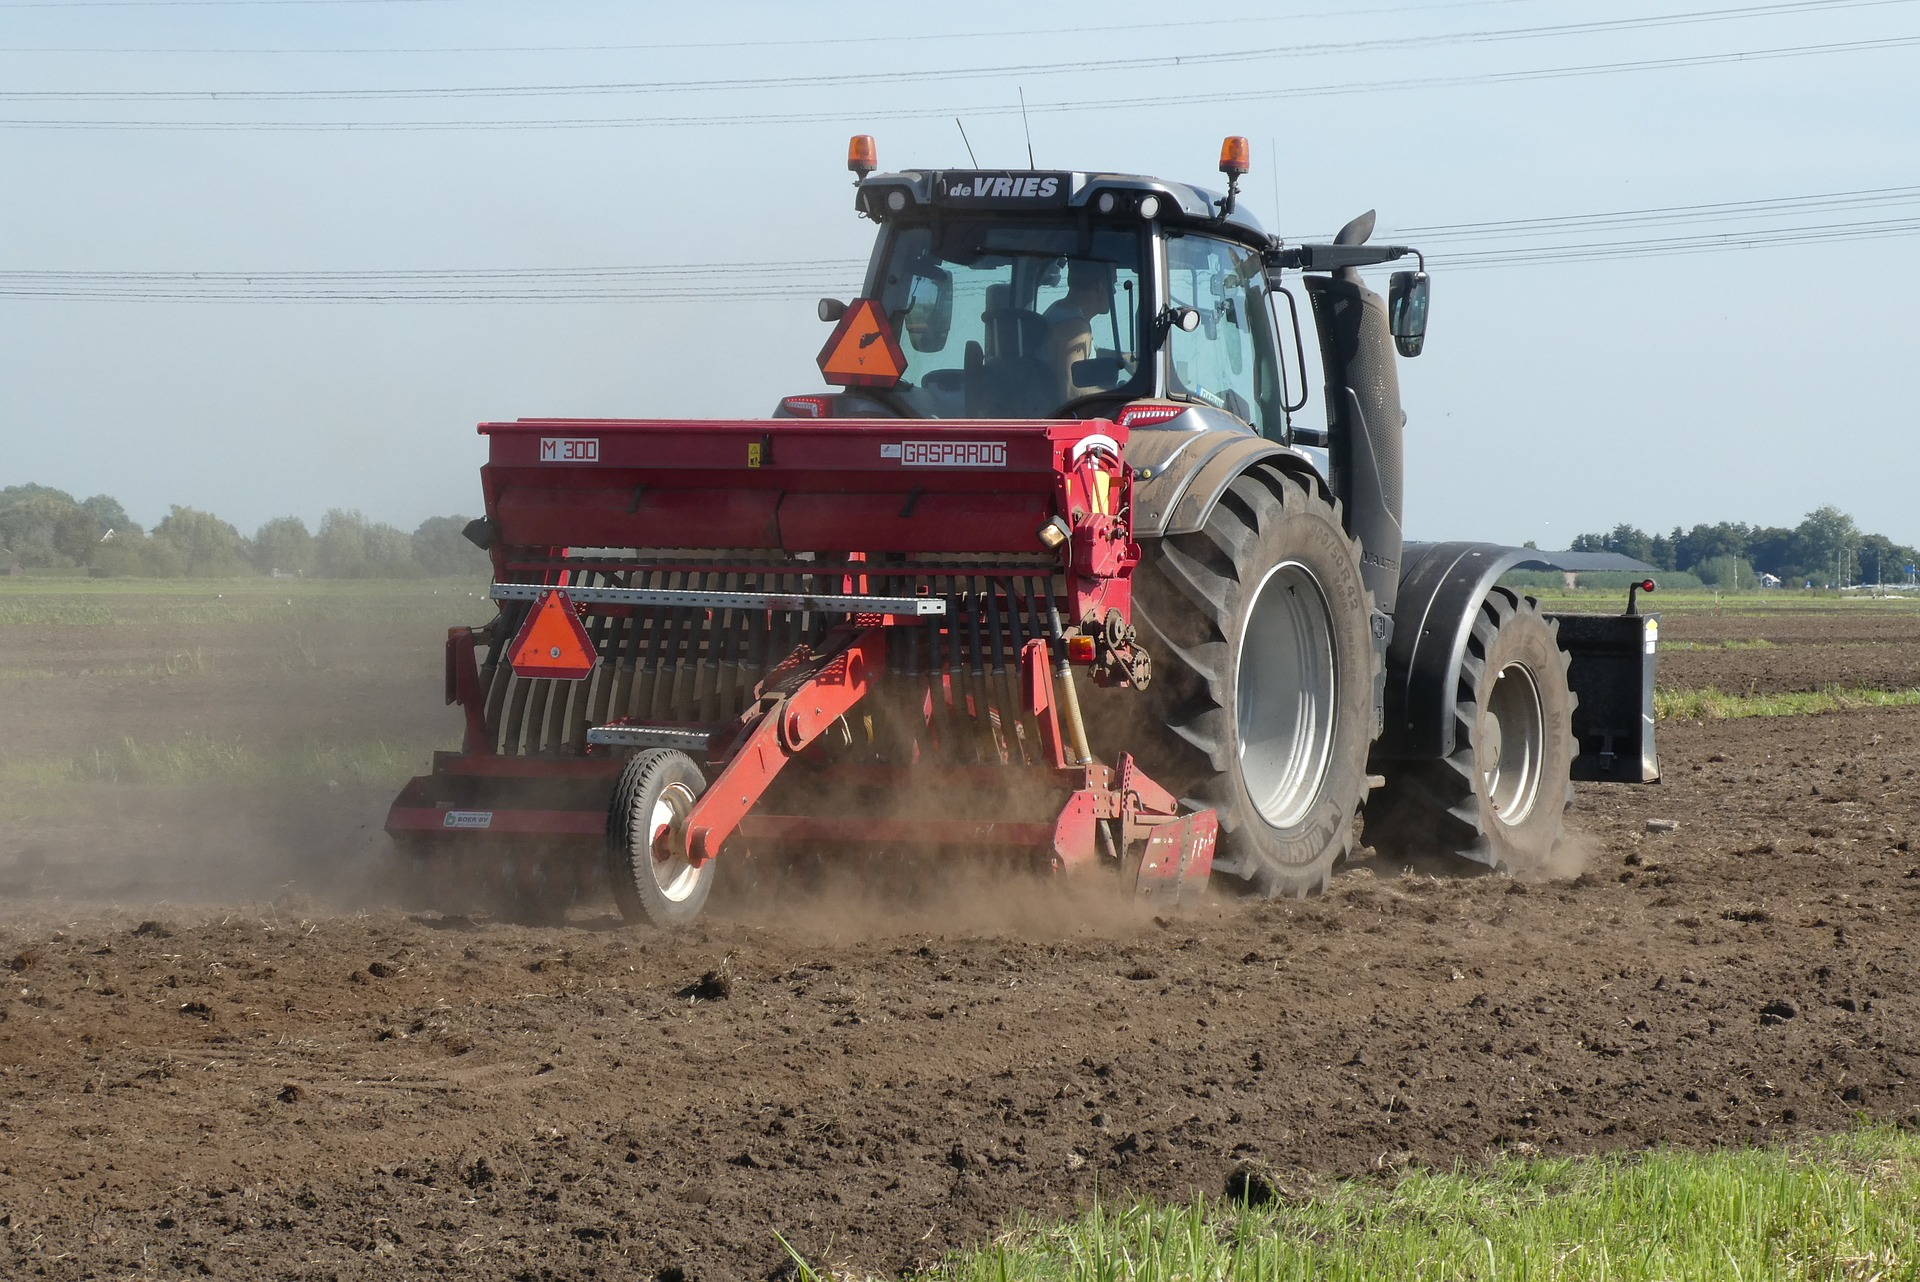 Using Tractors with PTO Shafts